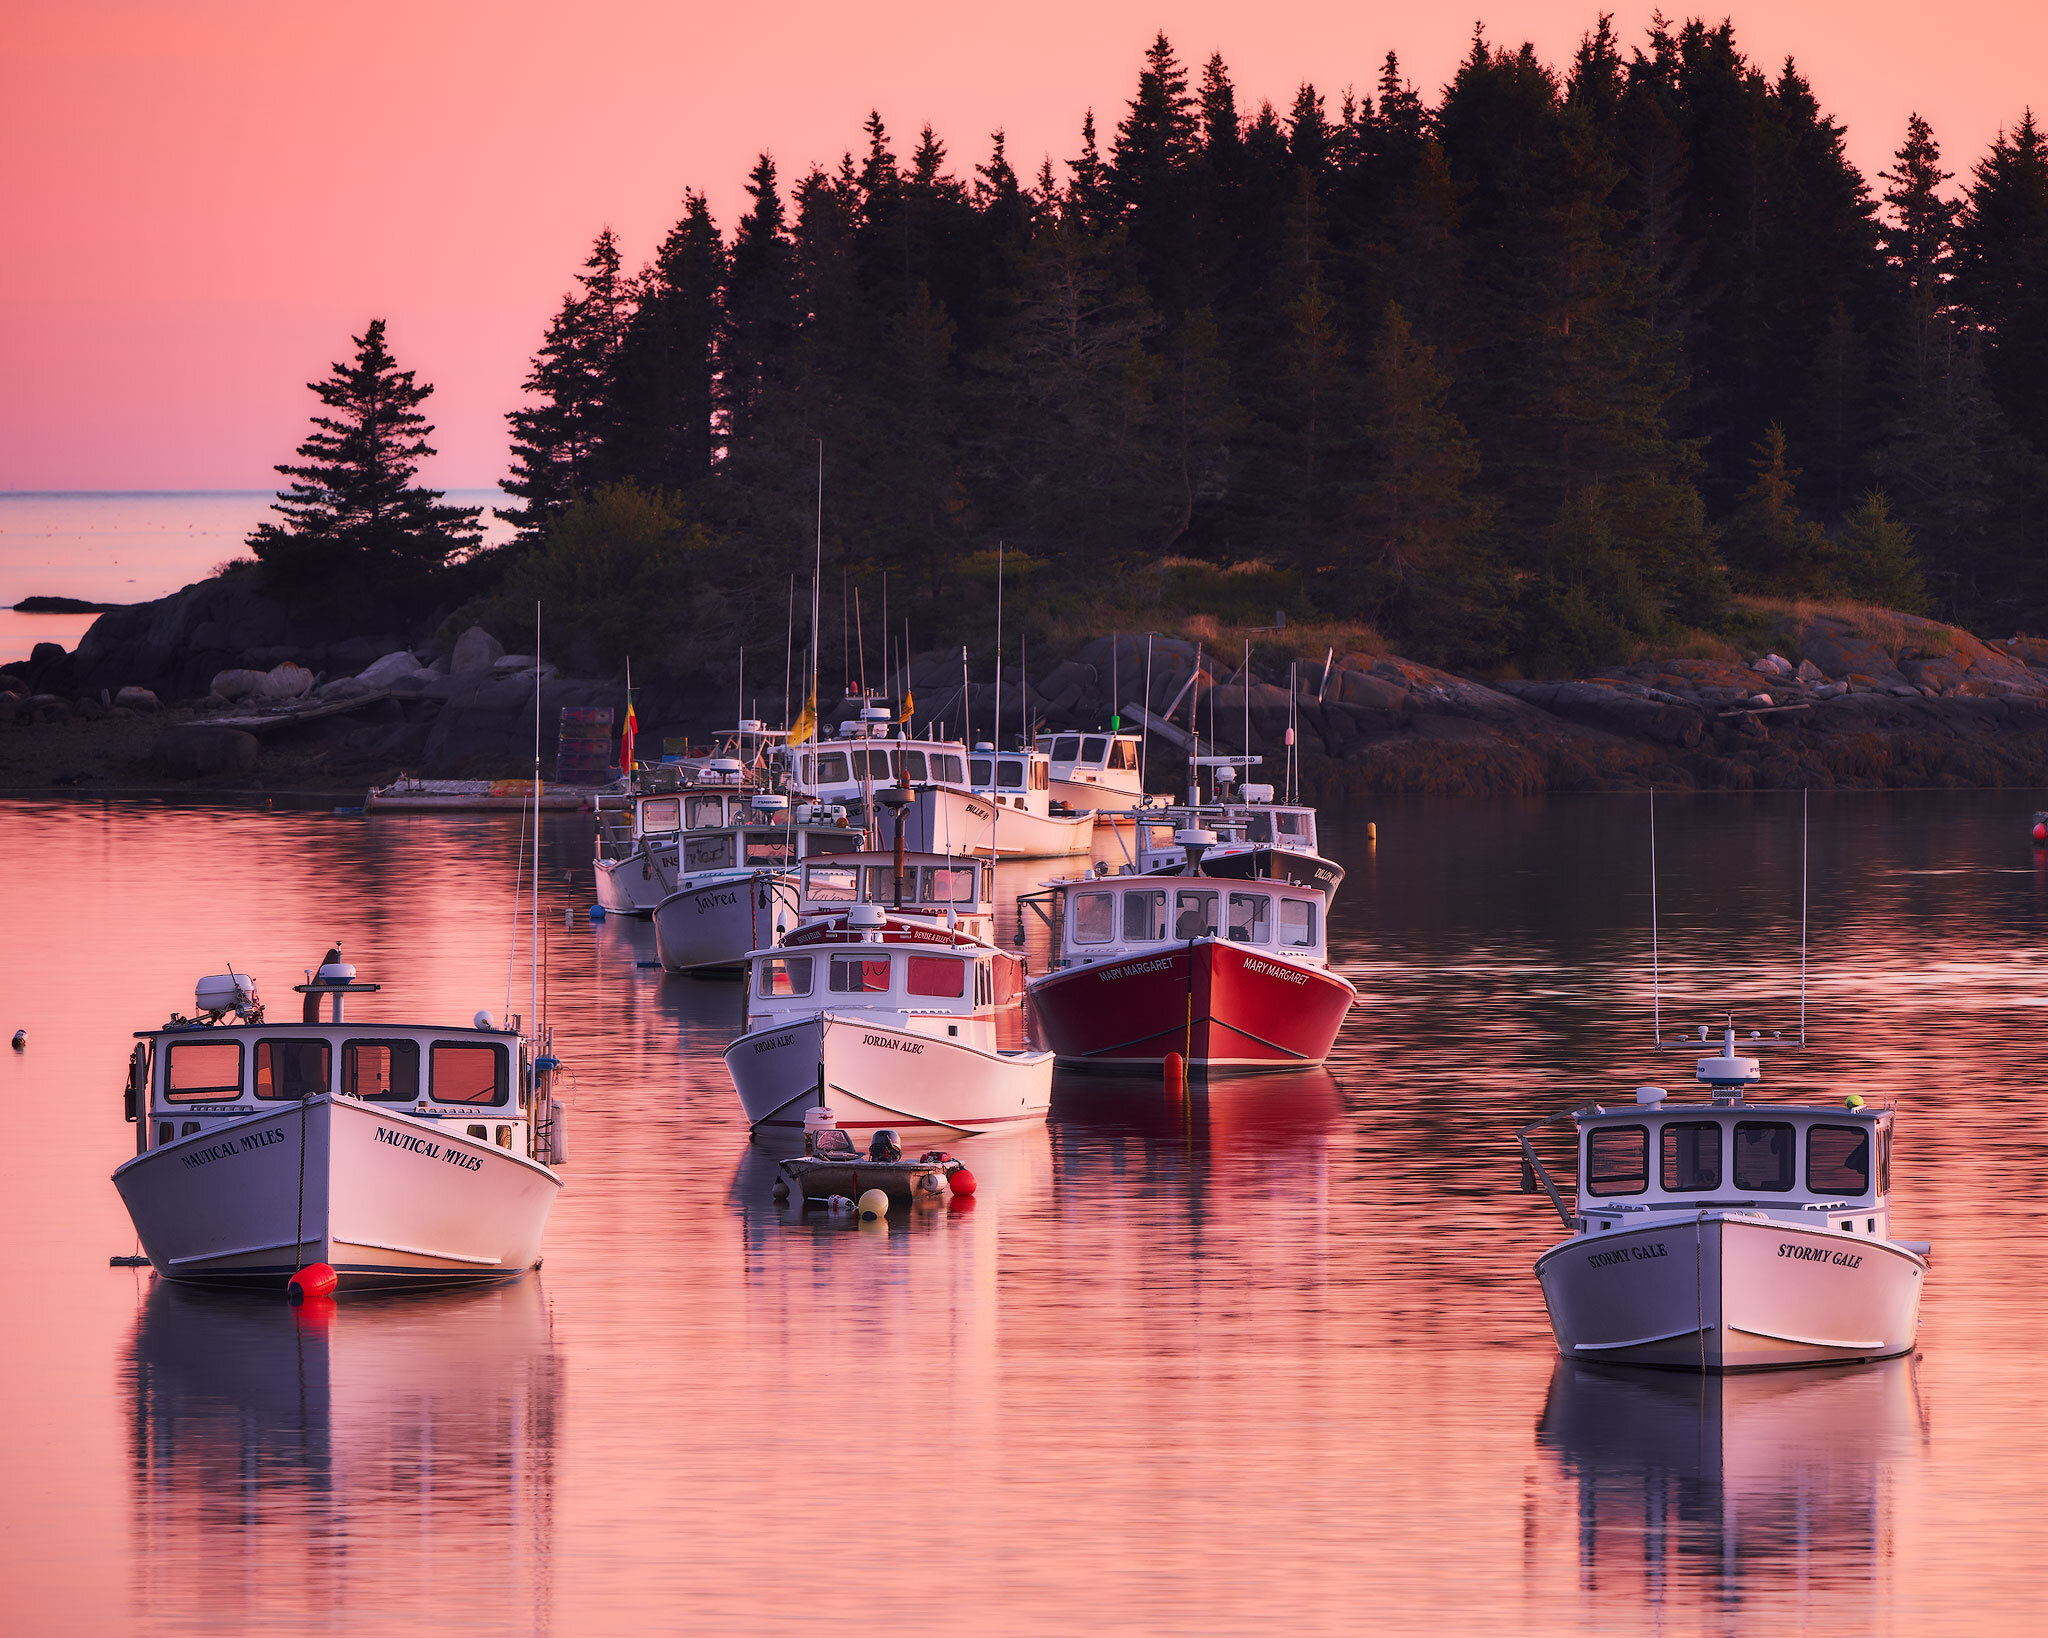 Maine-Vinalhaven-Lobster-Fleet-copy.jpg